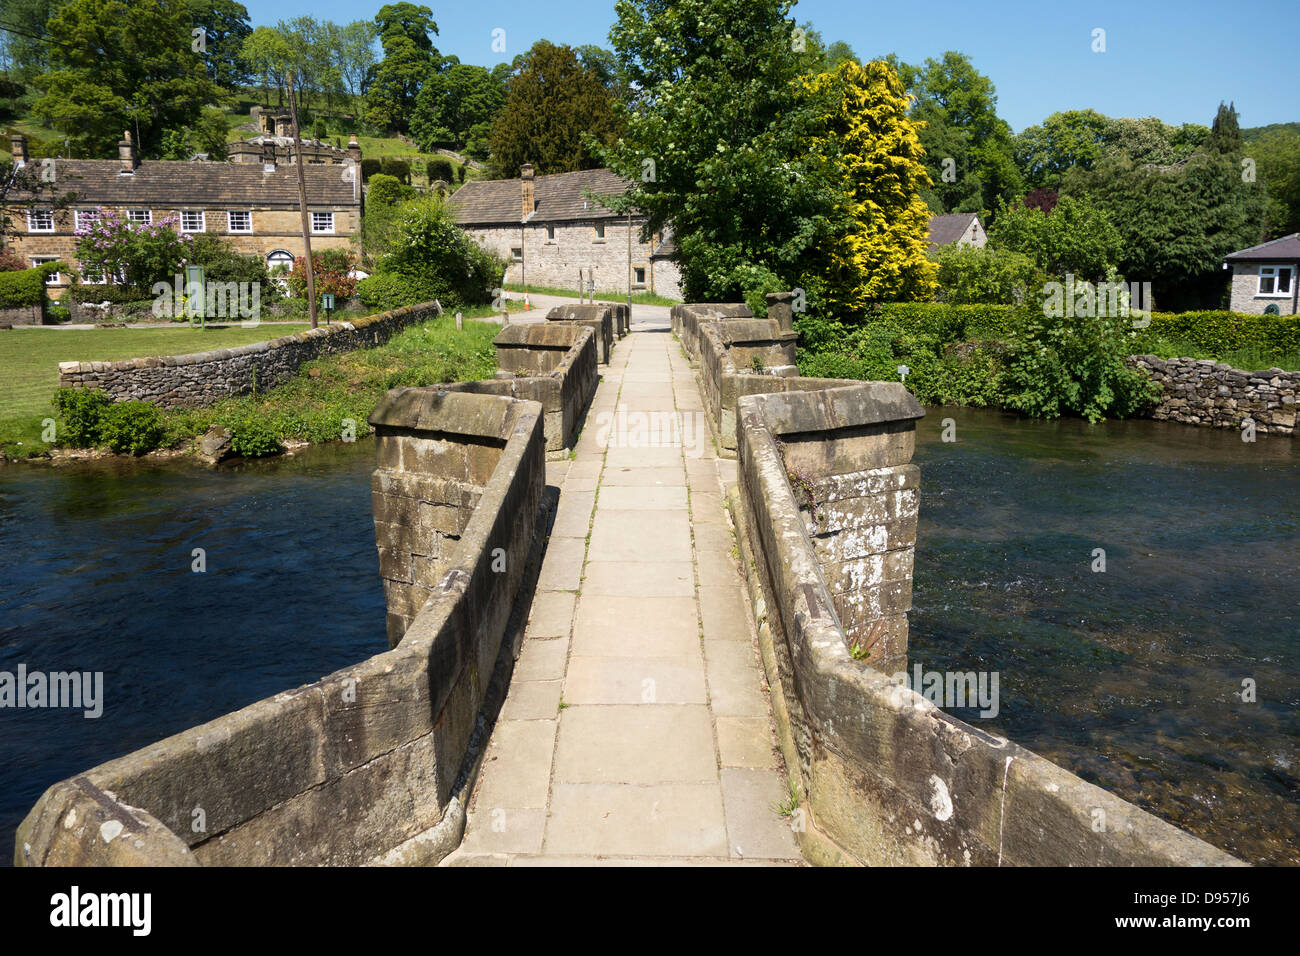 Holme Bridge a packhorse bridge built in 1664 on the River Wye at Bakewell, Derbyshire, England, U.K. - Stock Image